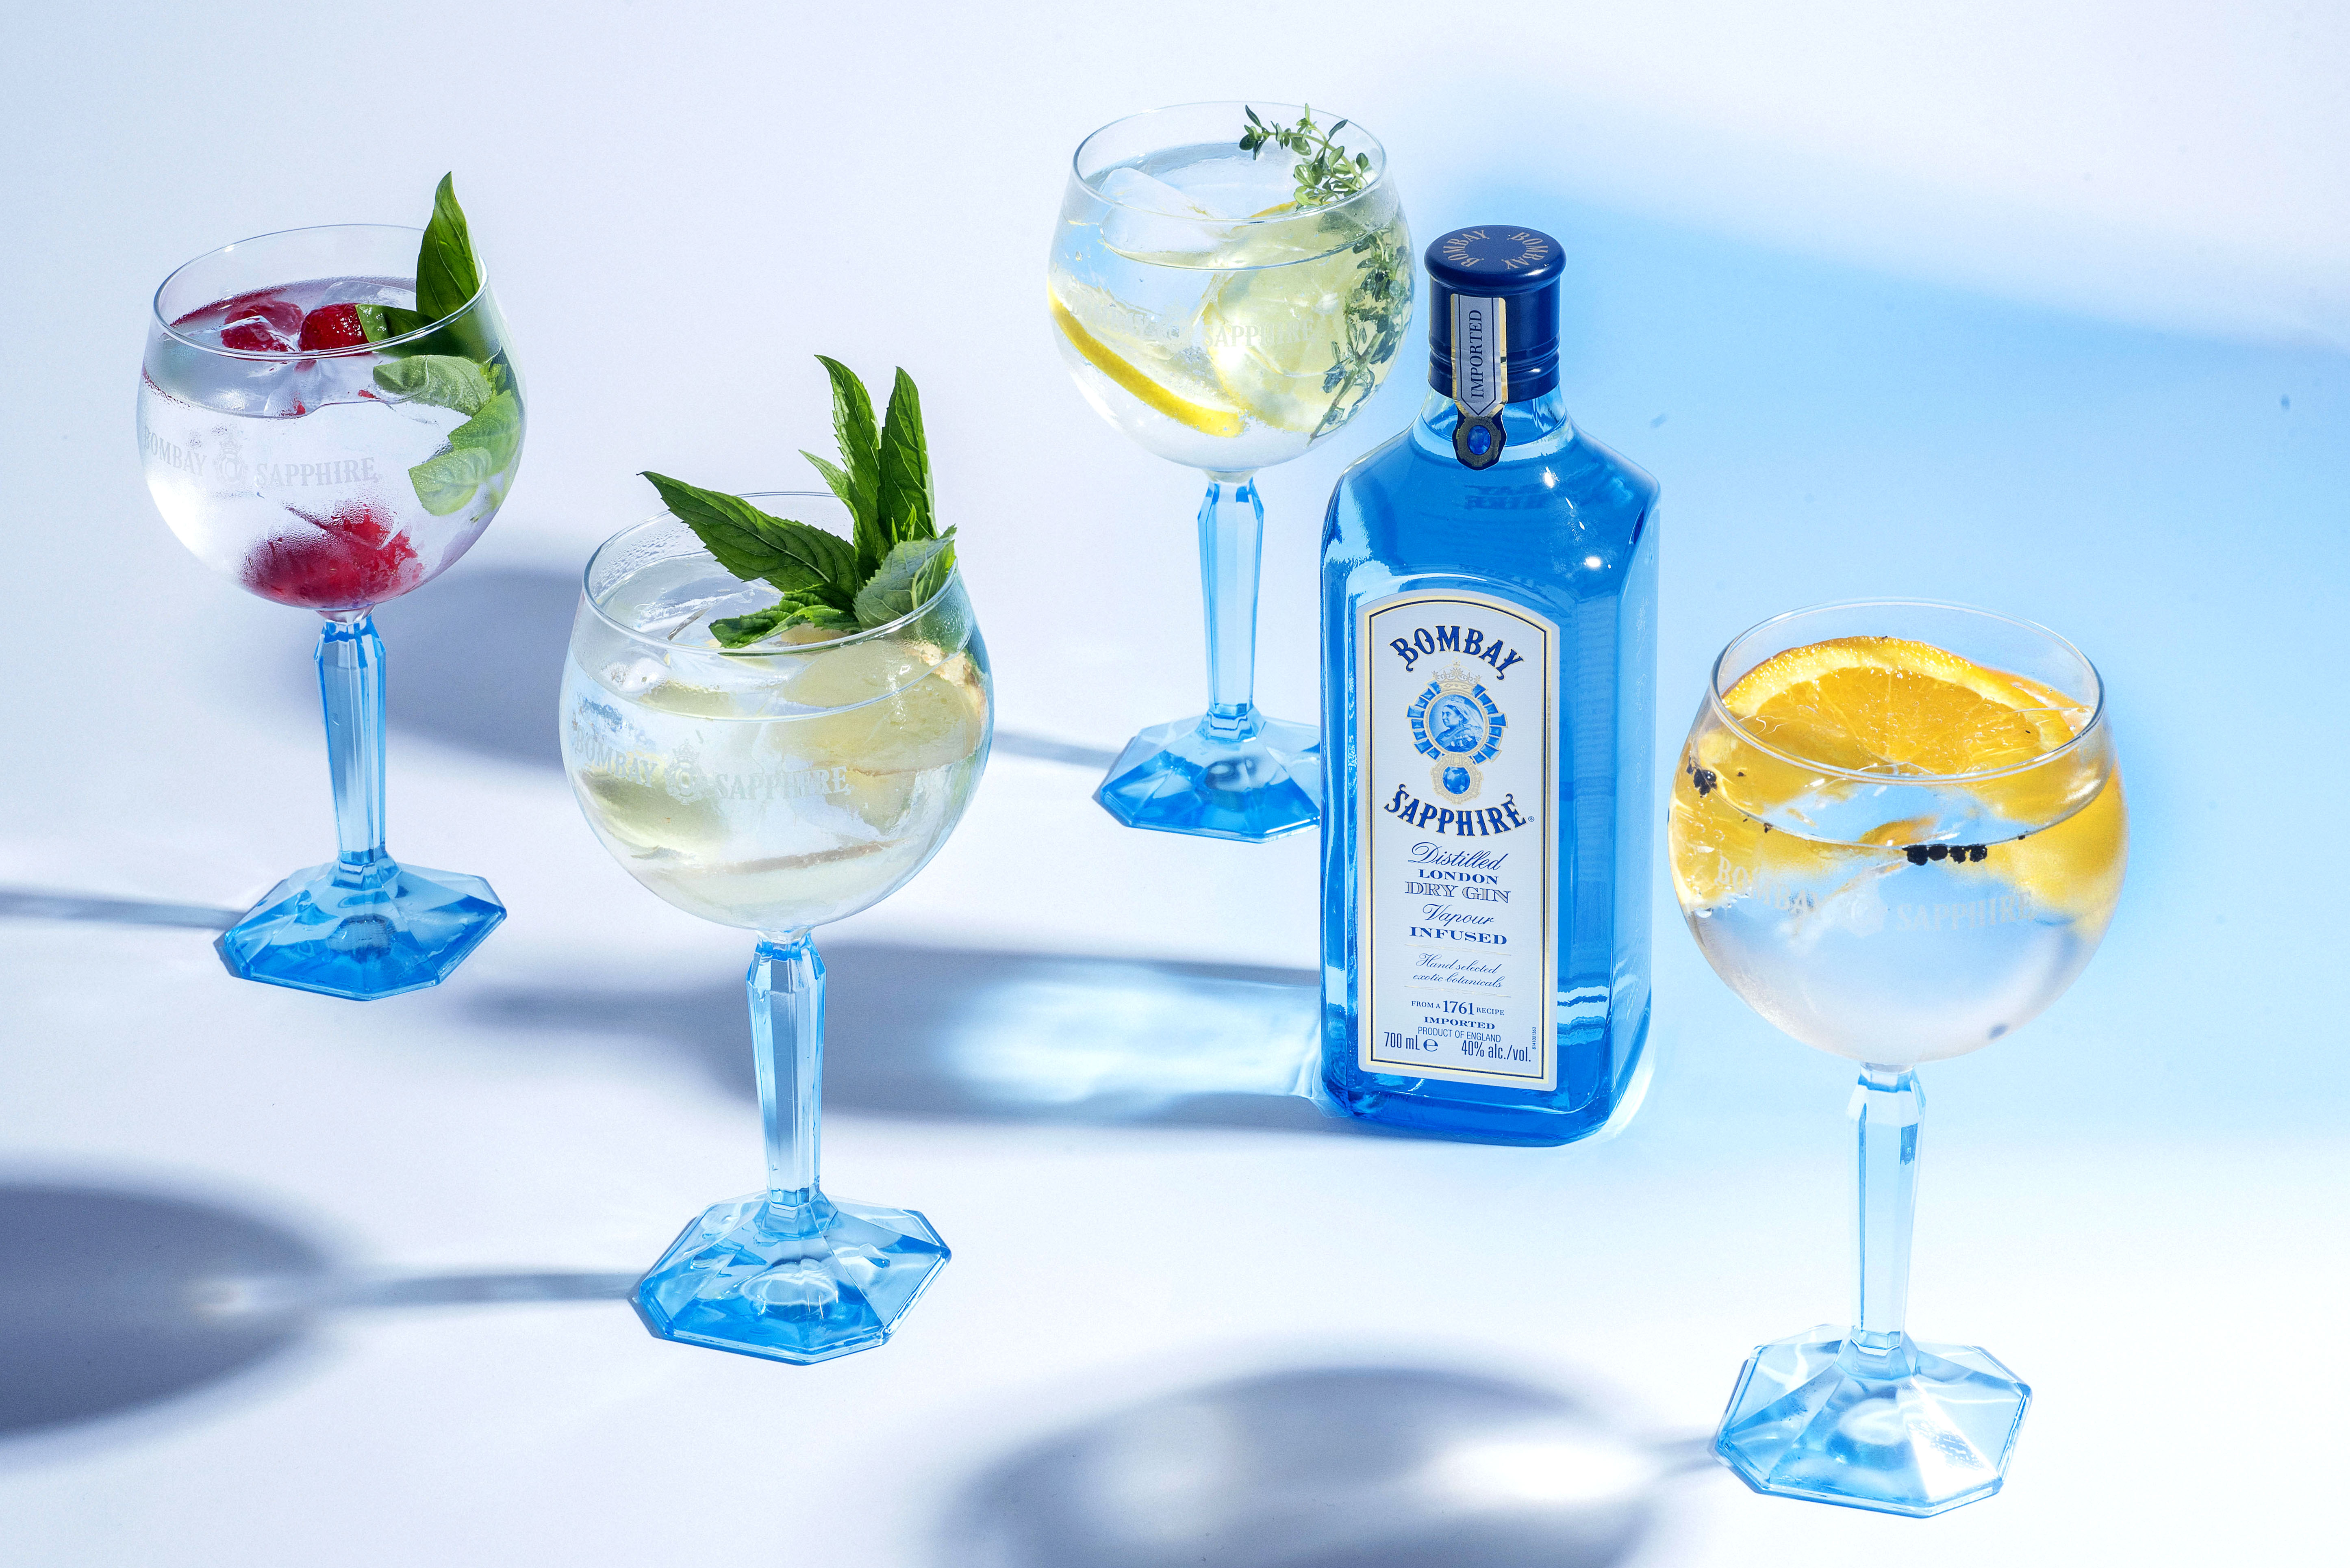 Bombay Sapphire has partnered with Australia's oldest and most visited gallery